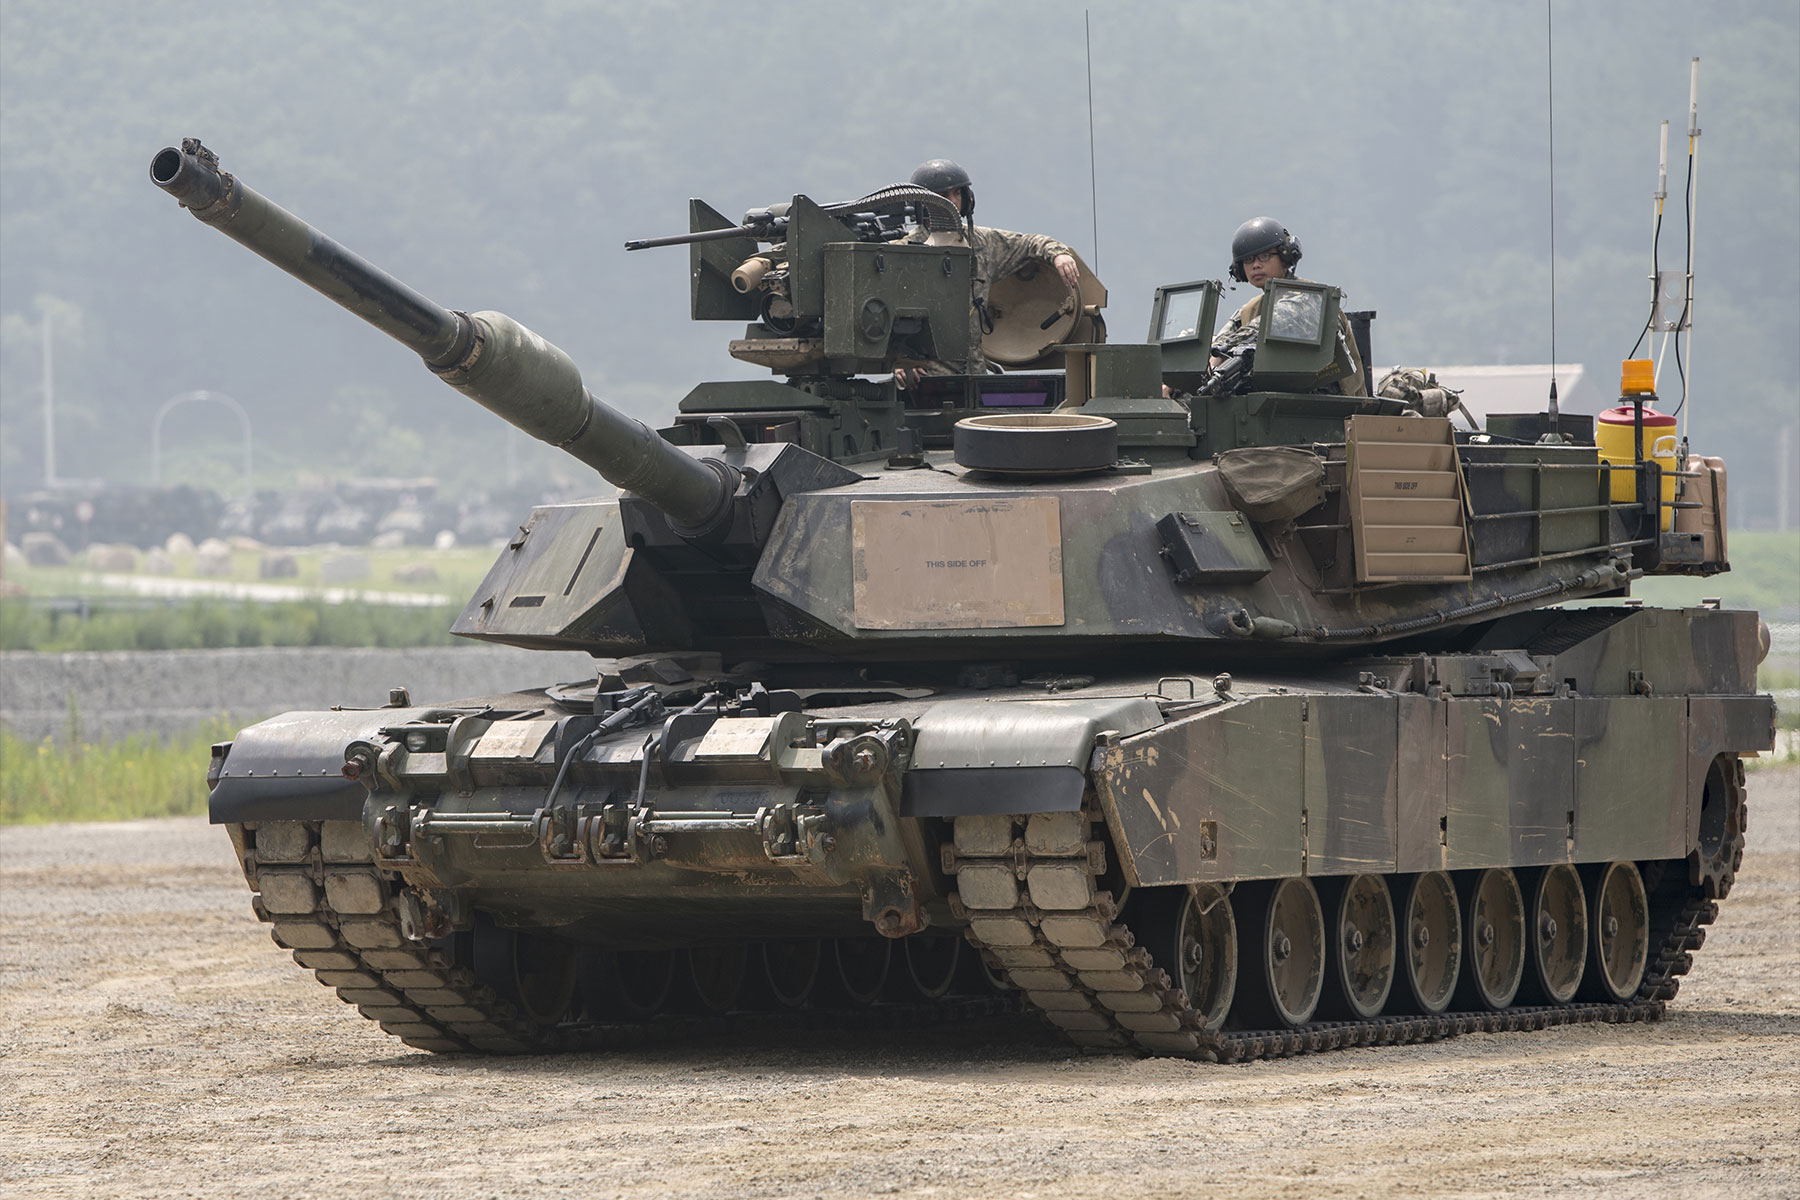 Army To Spend 450 Million On Upgrades To M1 Tanks Strykers Military Com